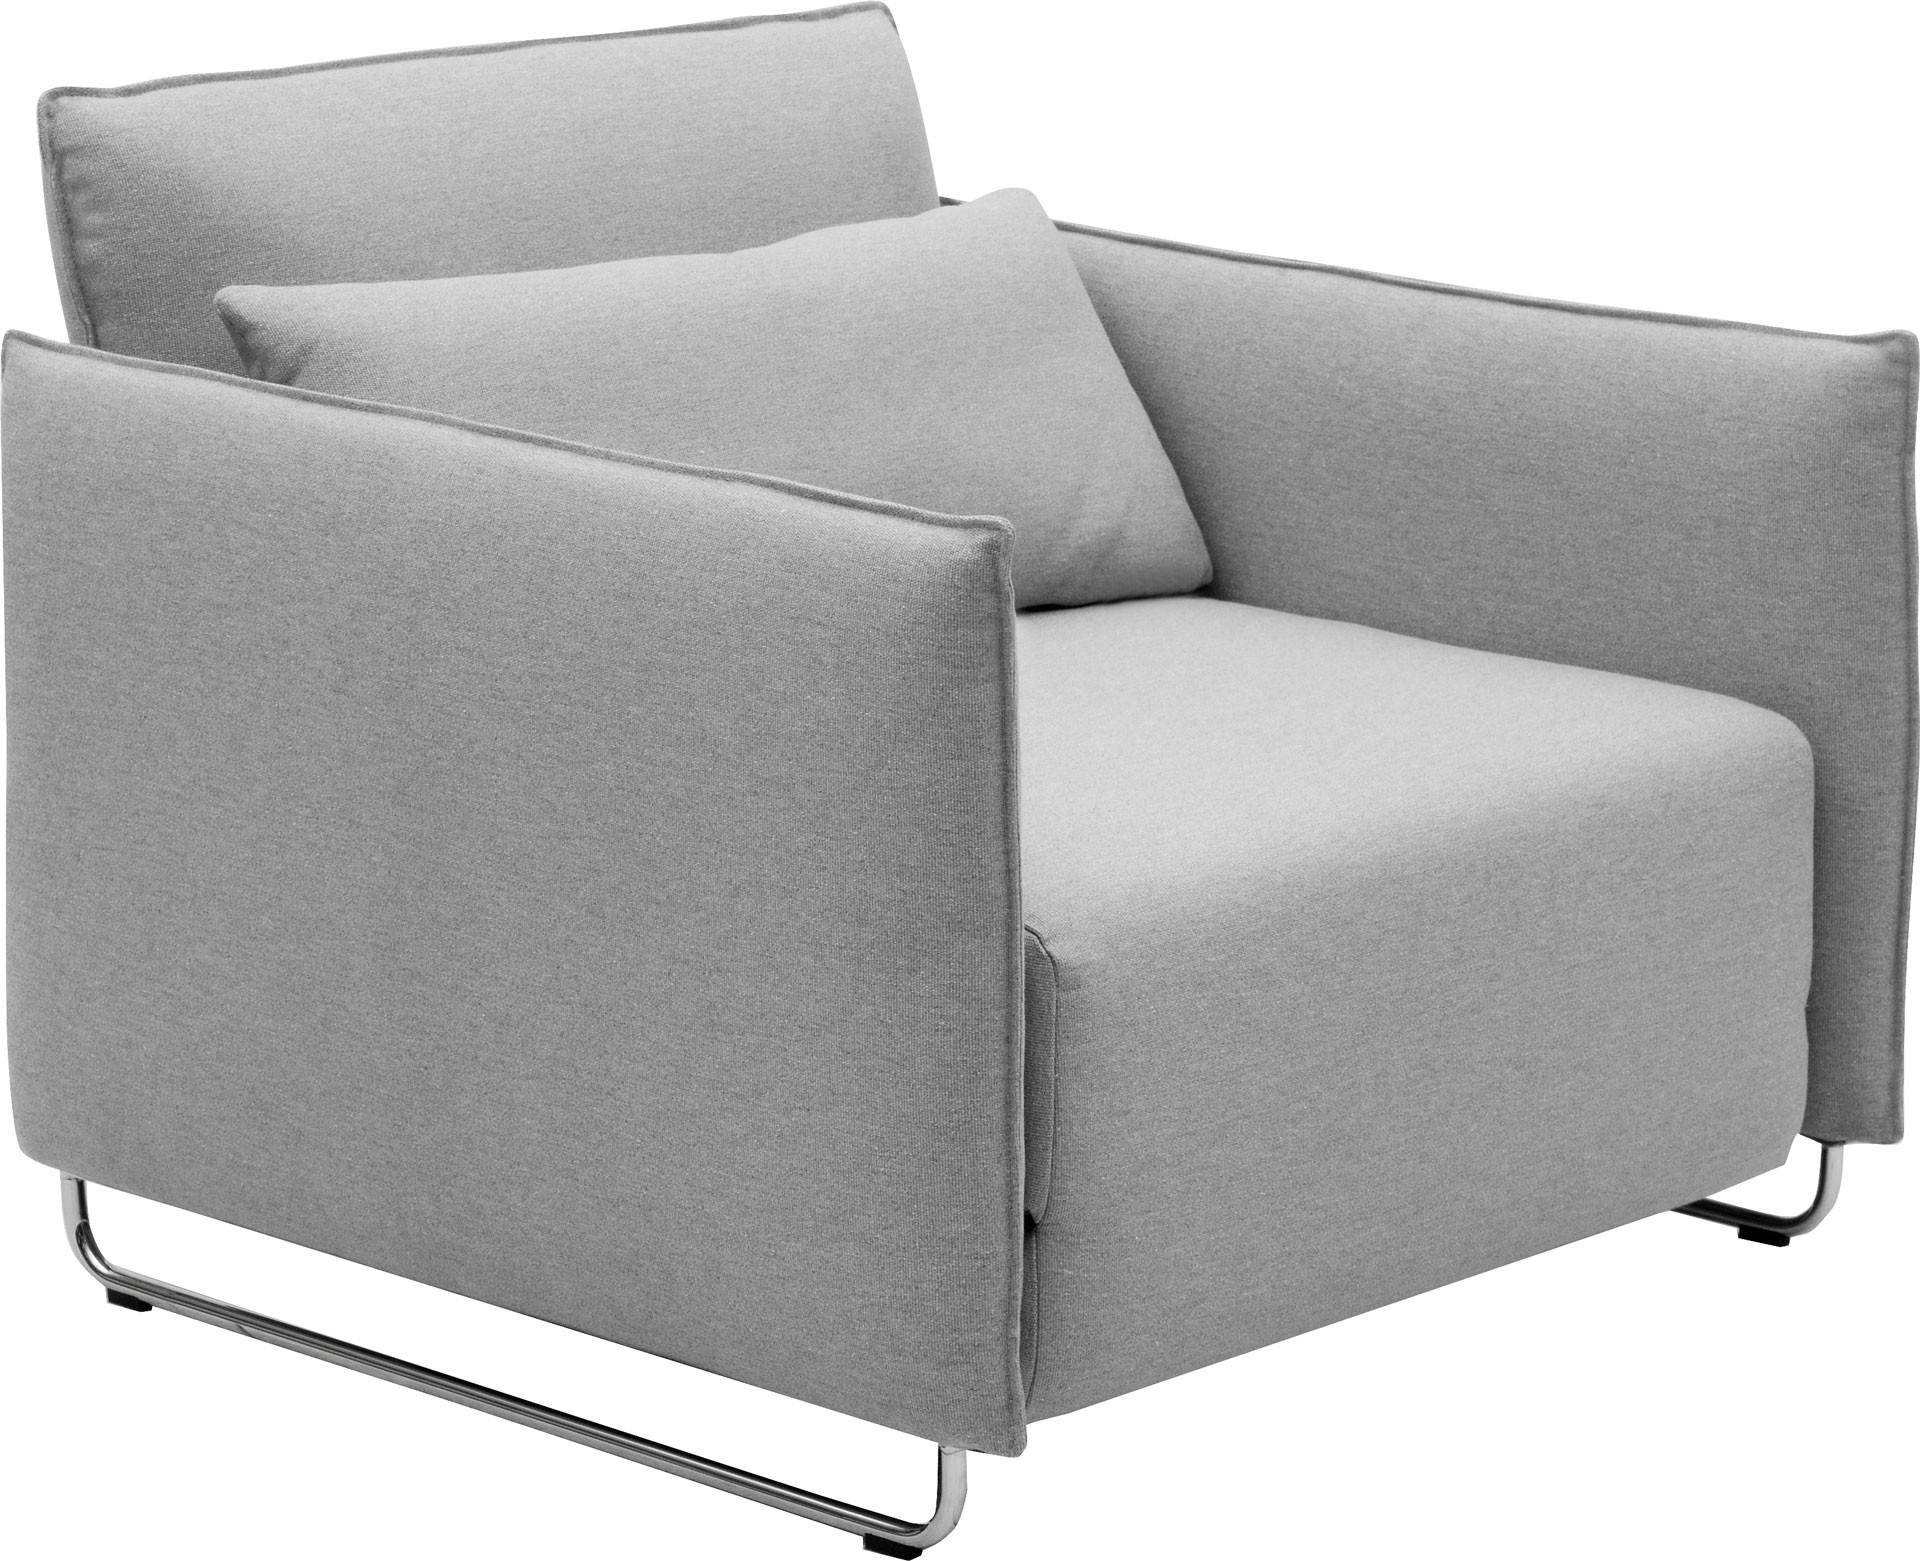 Sofas Center : Single Chair Sofa Beds Model Ideas With Memory in Single Chair Sofa Bed (Image 22 of 30)